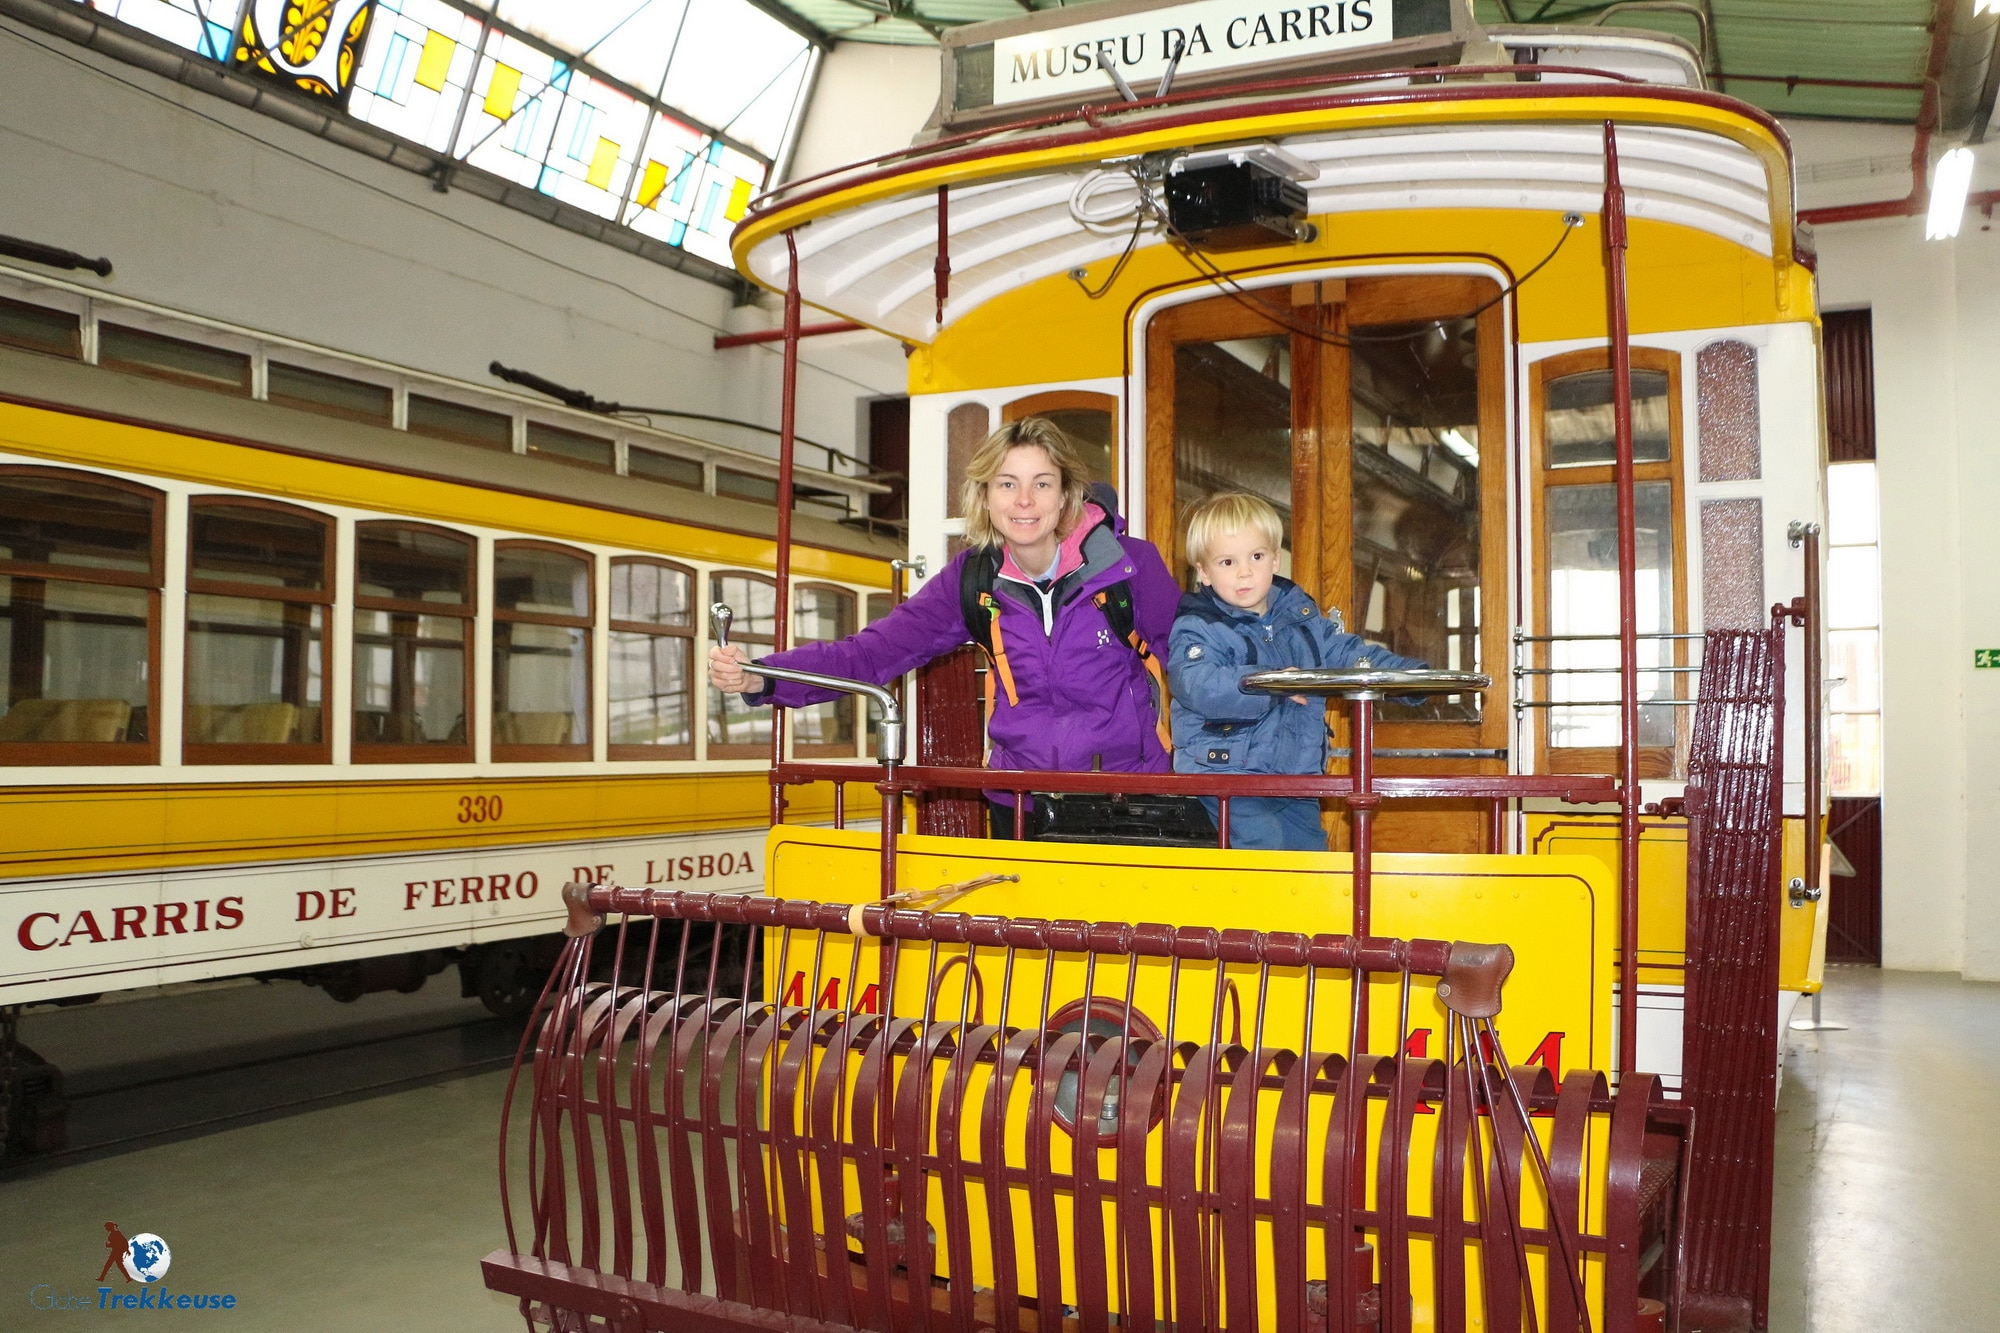 3 jours Lisbonne musee trams